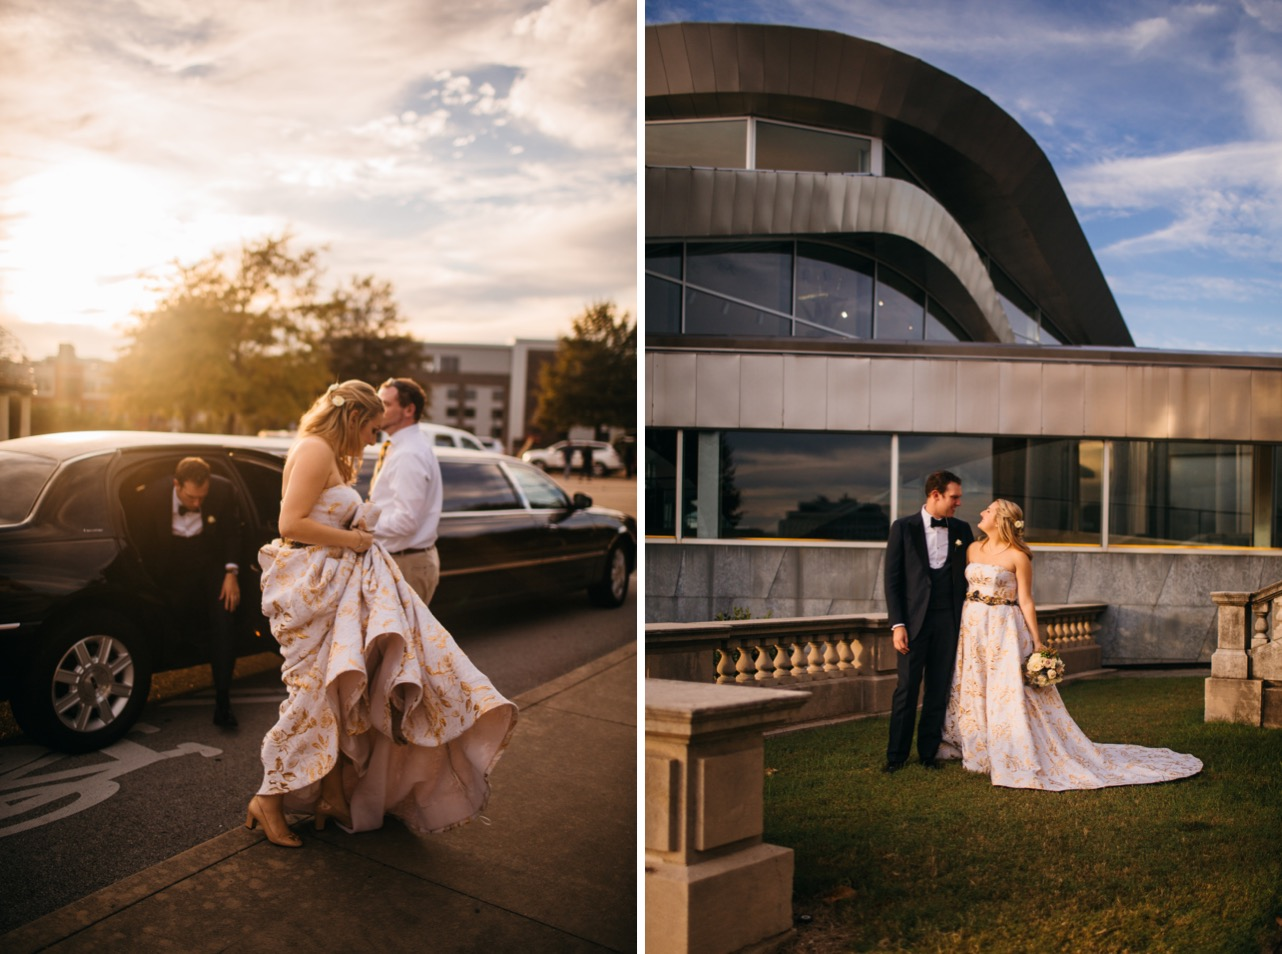 Bride and groom exit limo outside their reception of their wedding at the Hunter Museum. Bride and groom look at each other and smile.